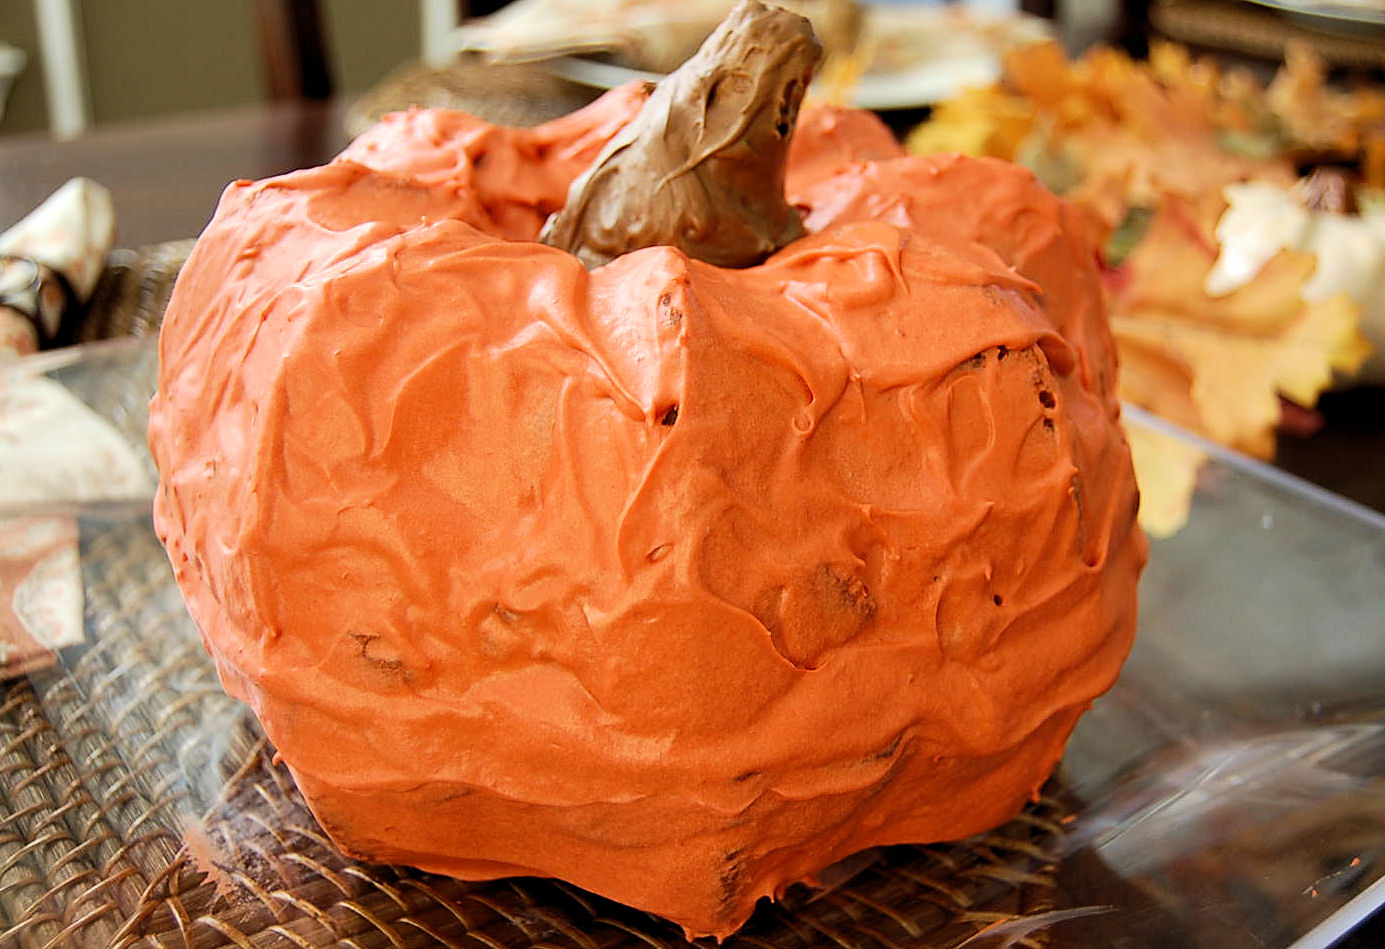 pumpkin-cake-not-what-your-thinking